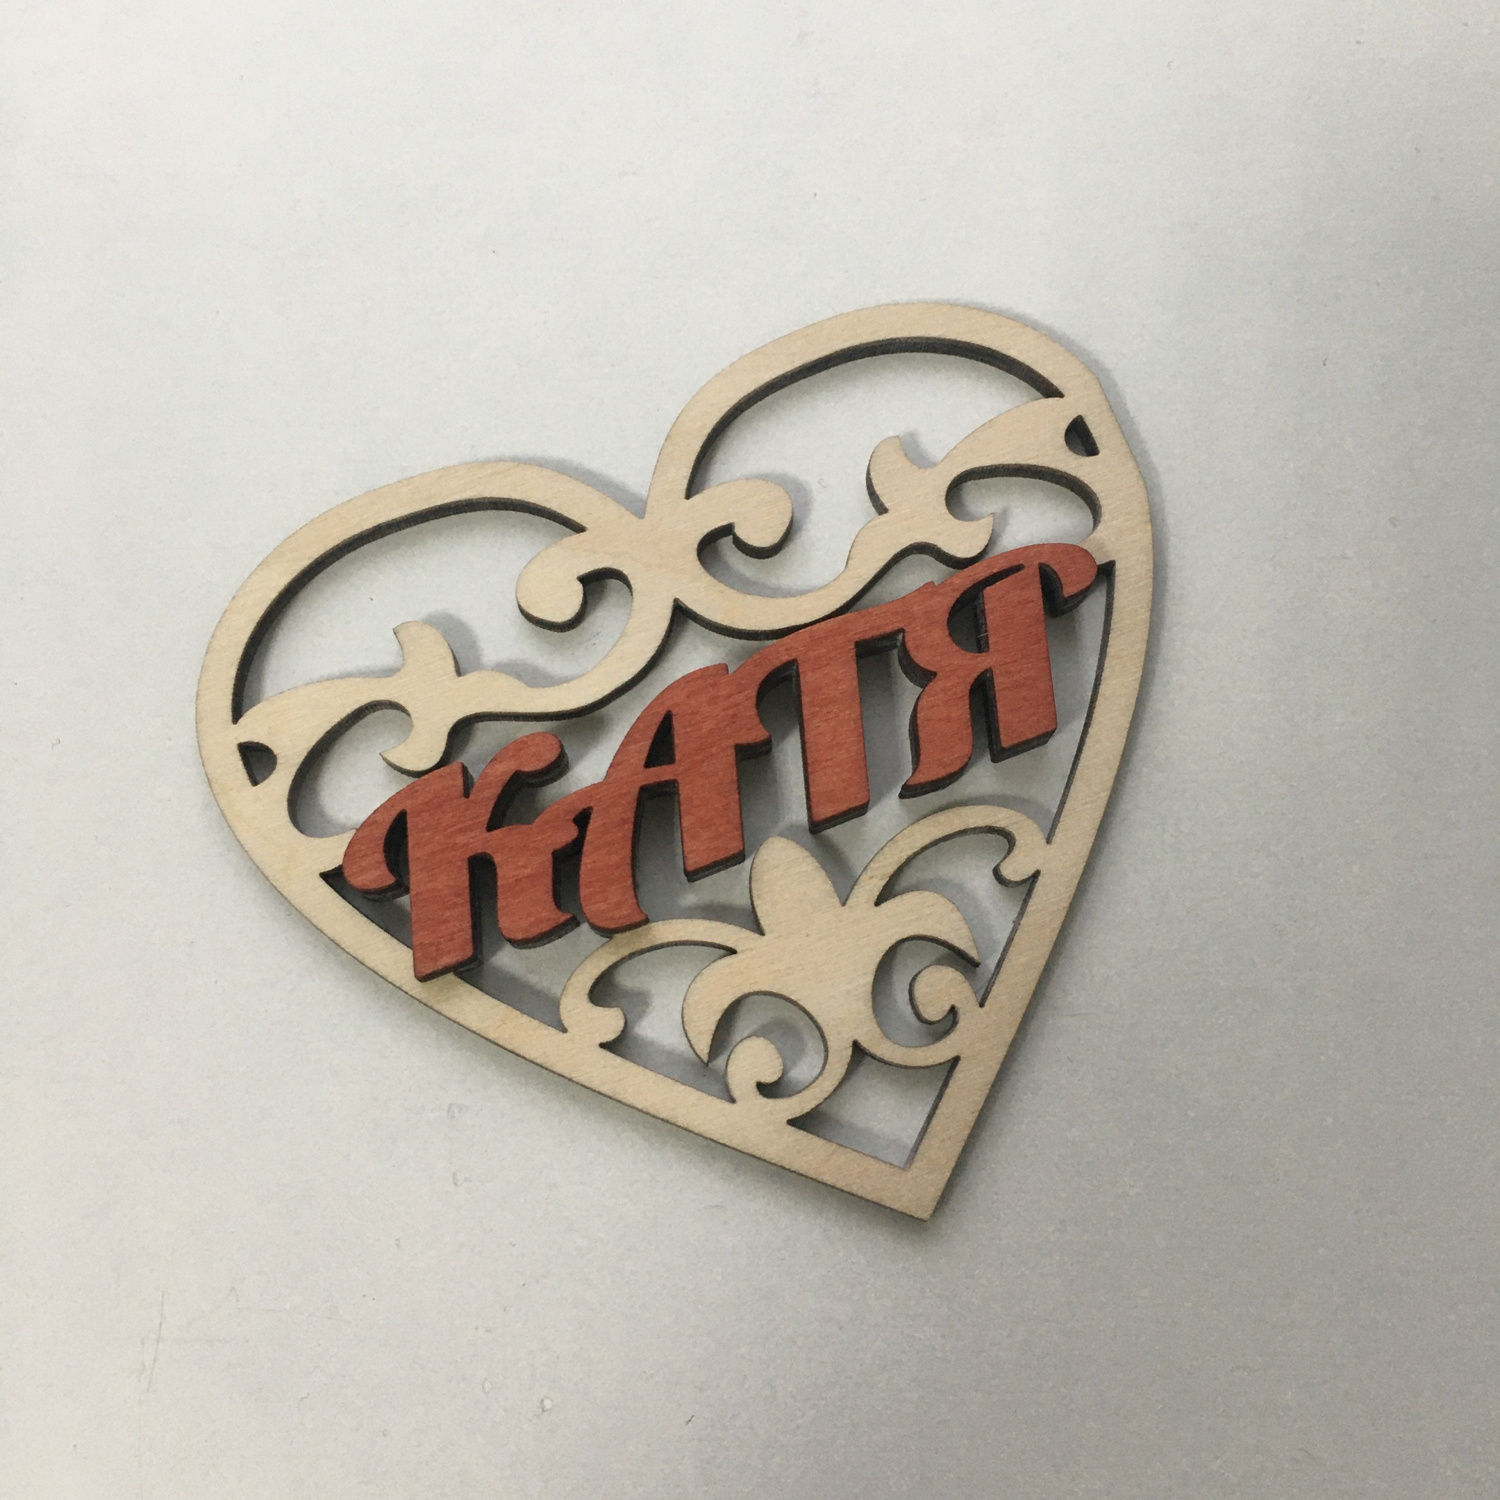 Laser Cut Valentine Wood Decor Free CDR Vectors Art